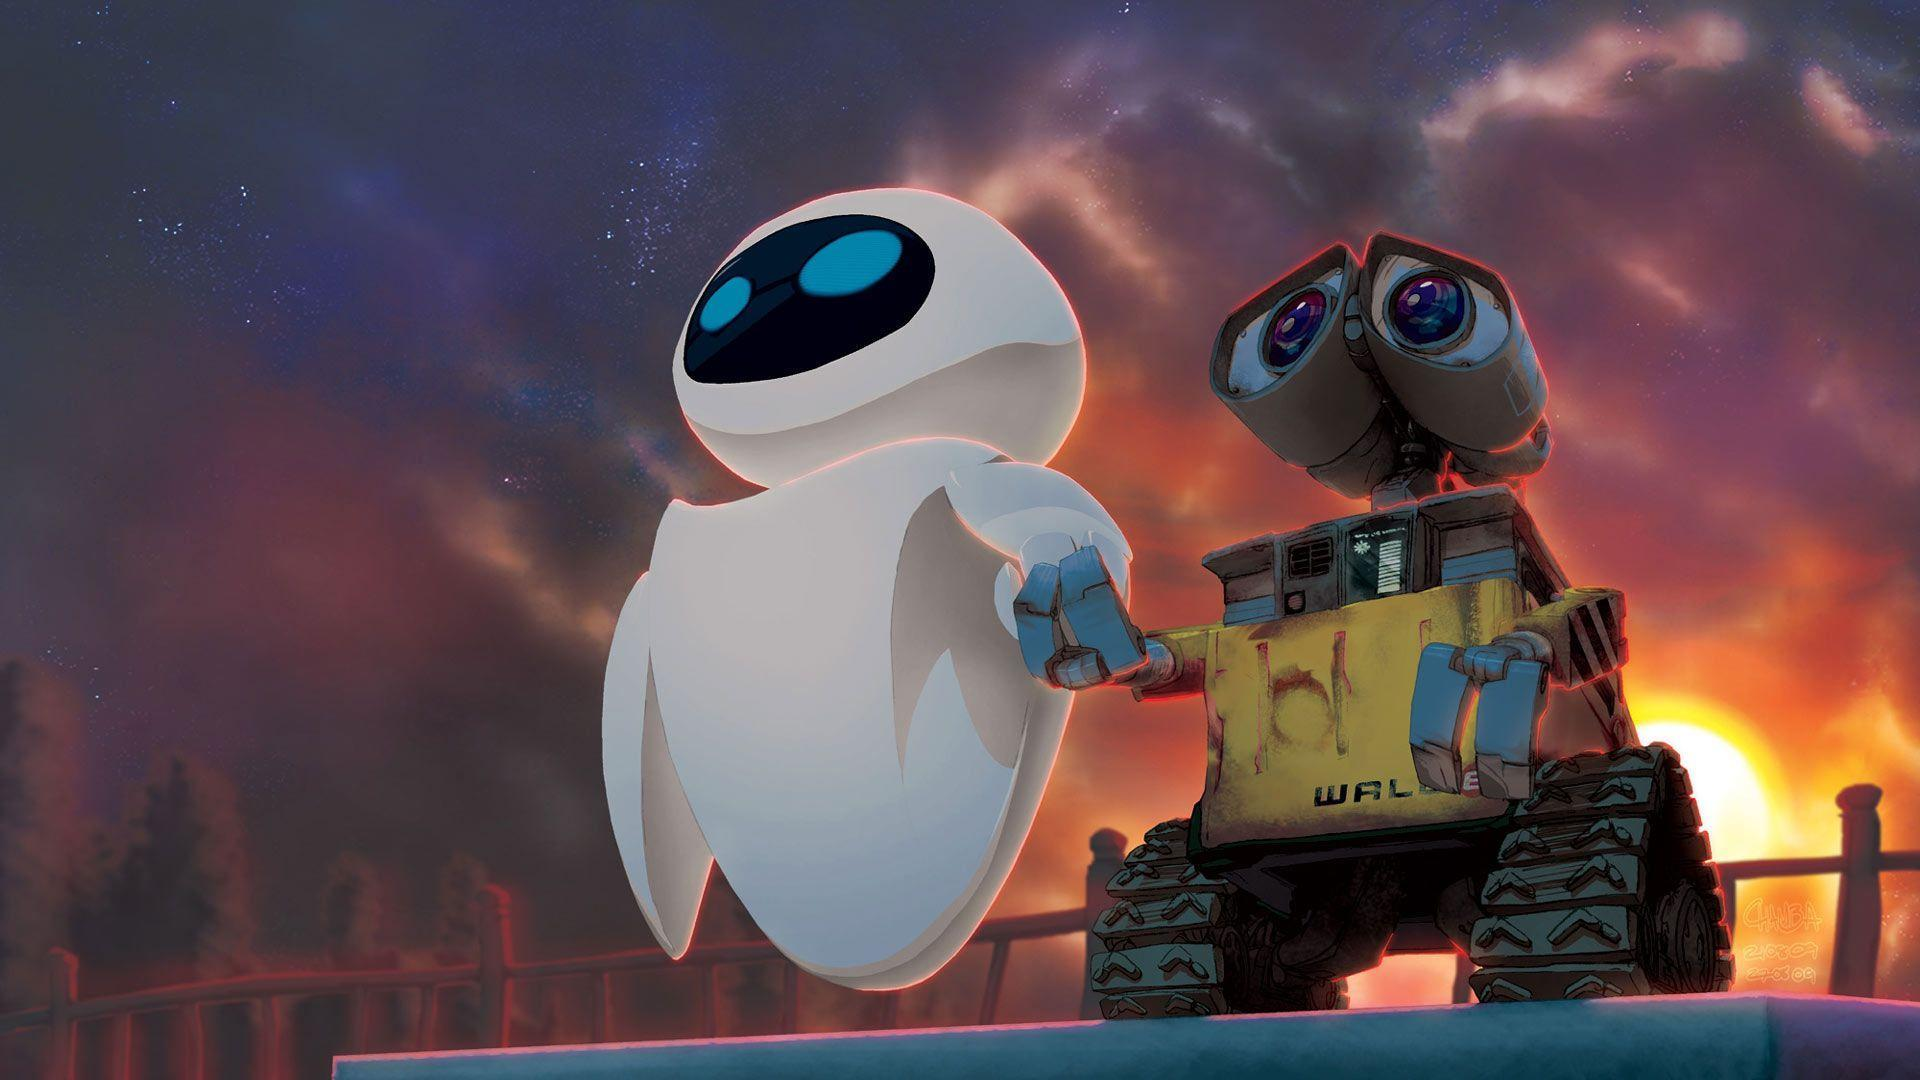 download wall e